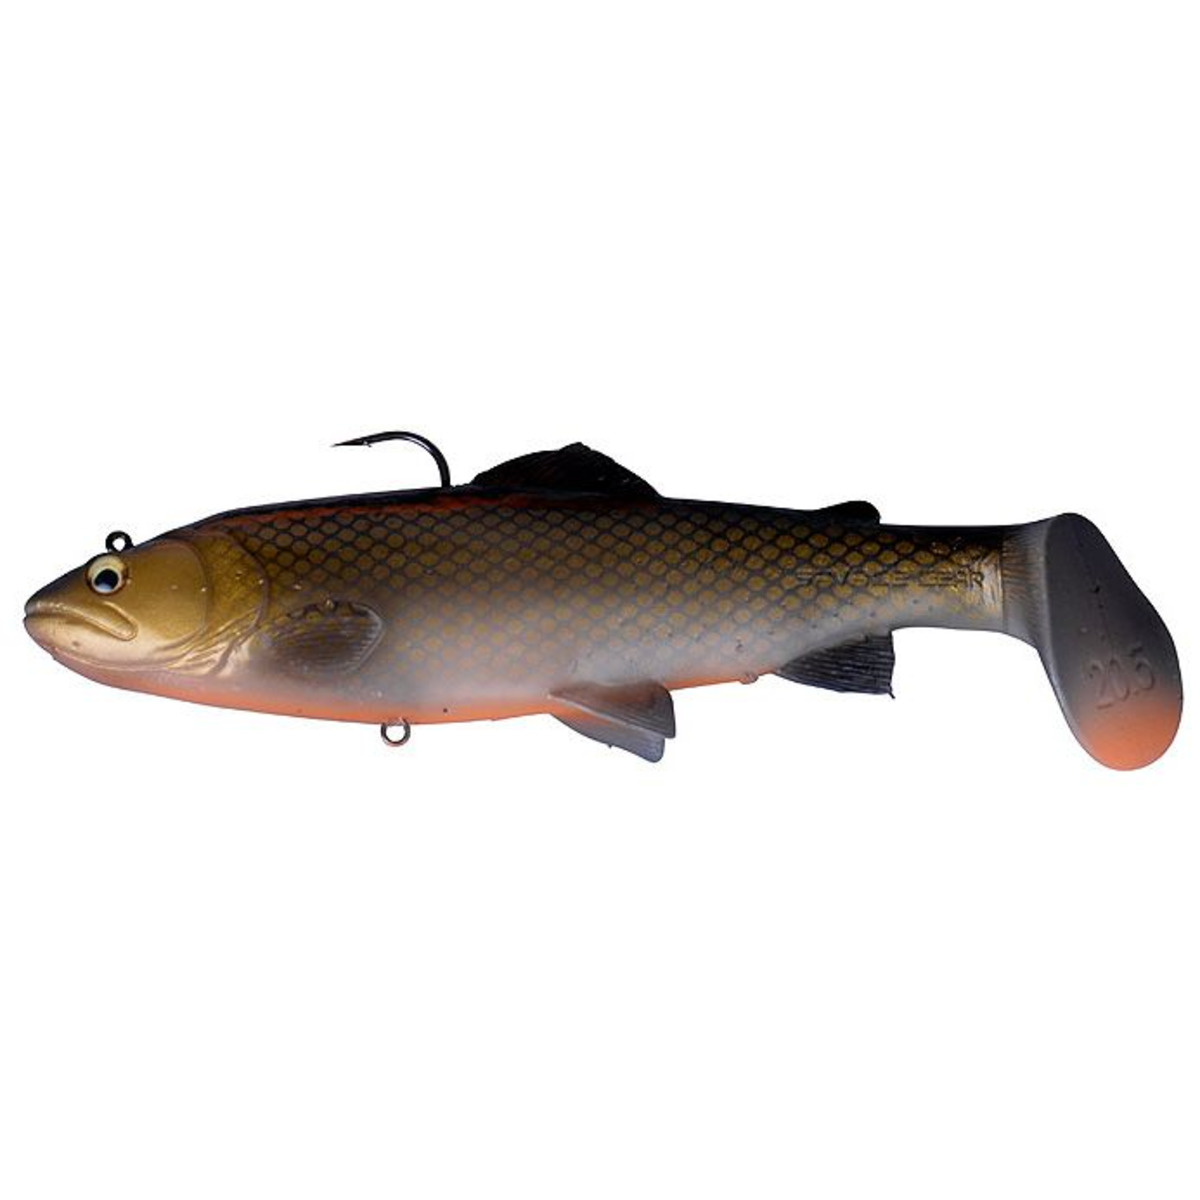 Savage Gear 3D Trout Rattle Shad - 27.5 cm - 275 g - Dirty Roach